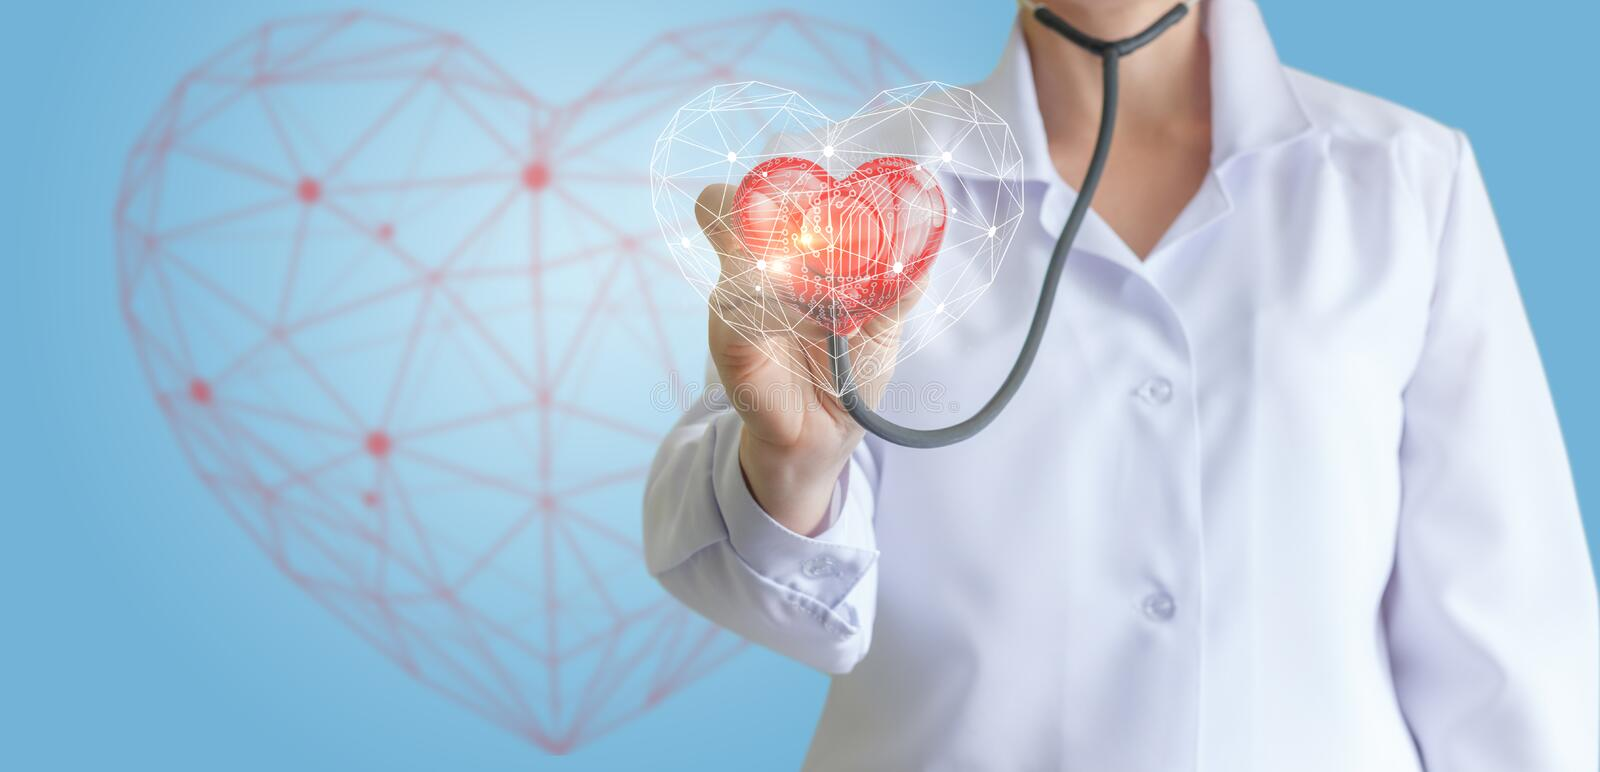 Modern of diagnostics of the heart. Modern of diagnostics of the heart concept design stock images